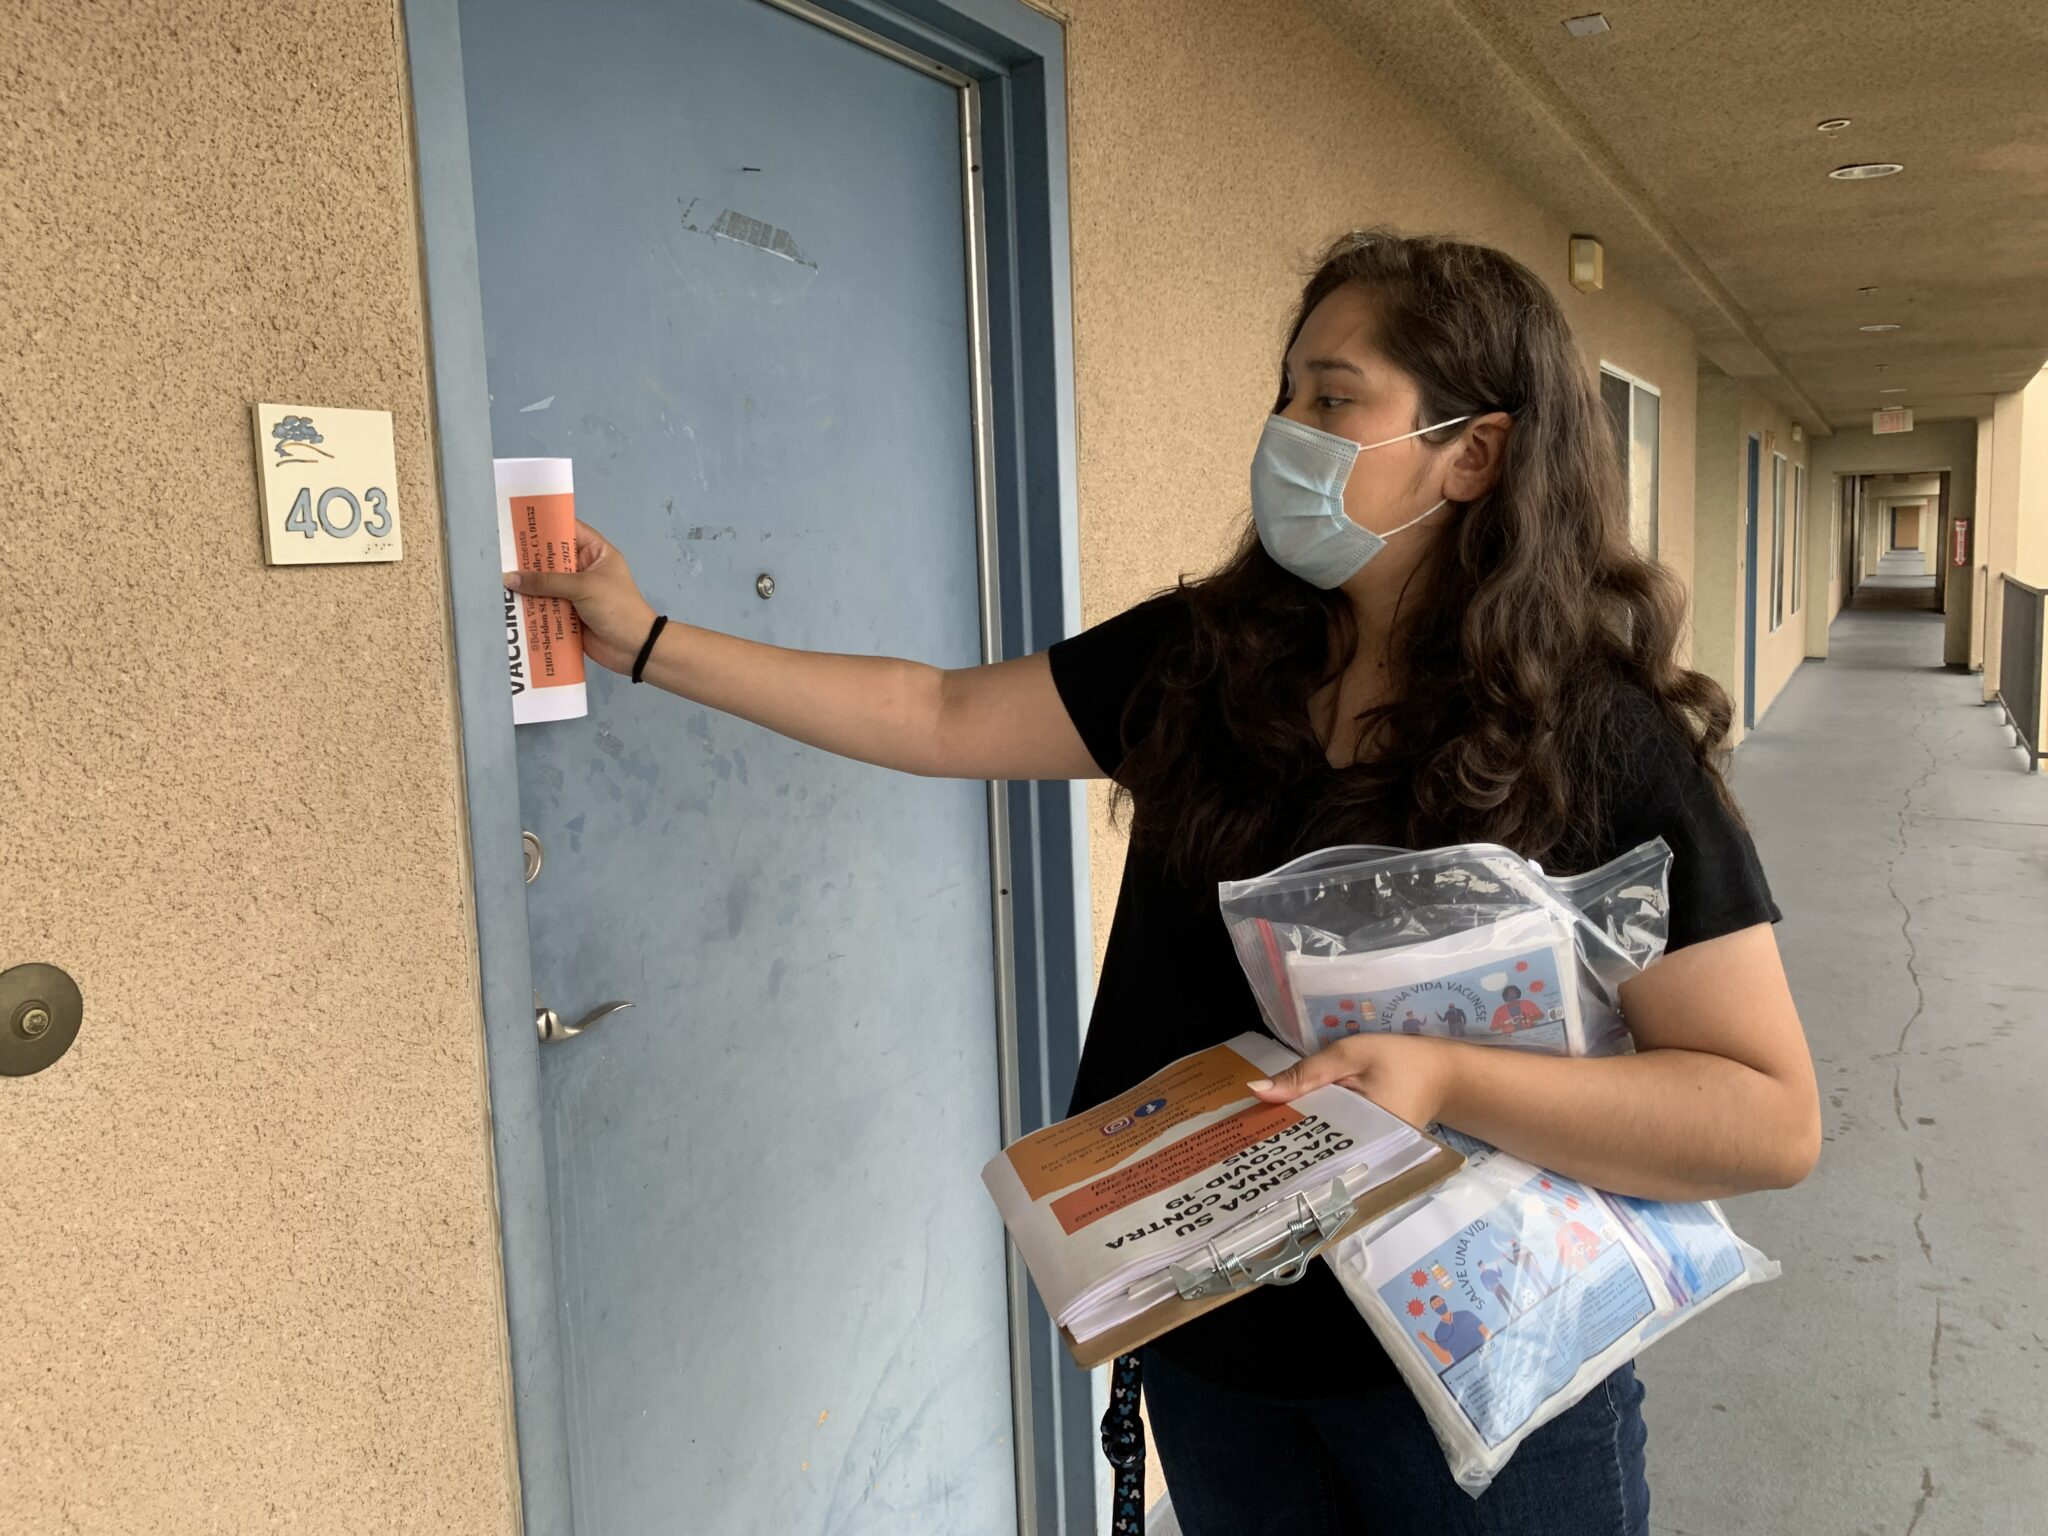 A DAY IN THE LIFE OF A VACCINATOR OUTREACH WORKER—20 SOMETHINGS LEAD THE CHARGE